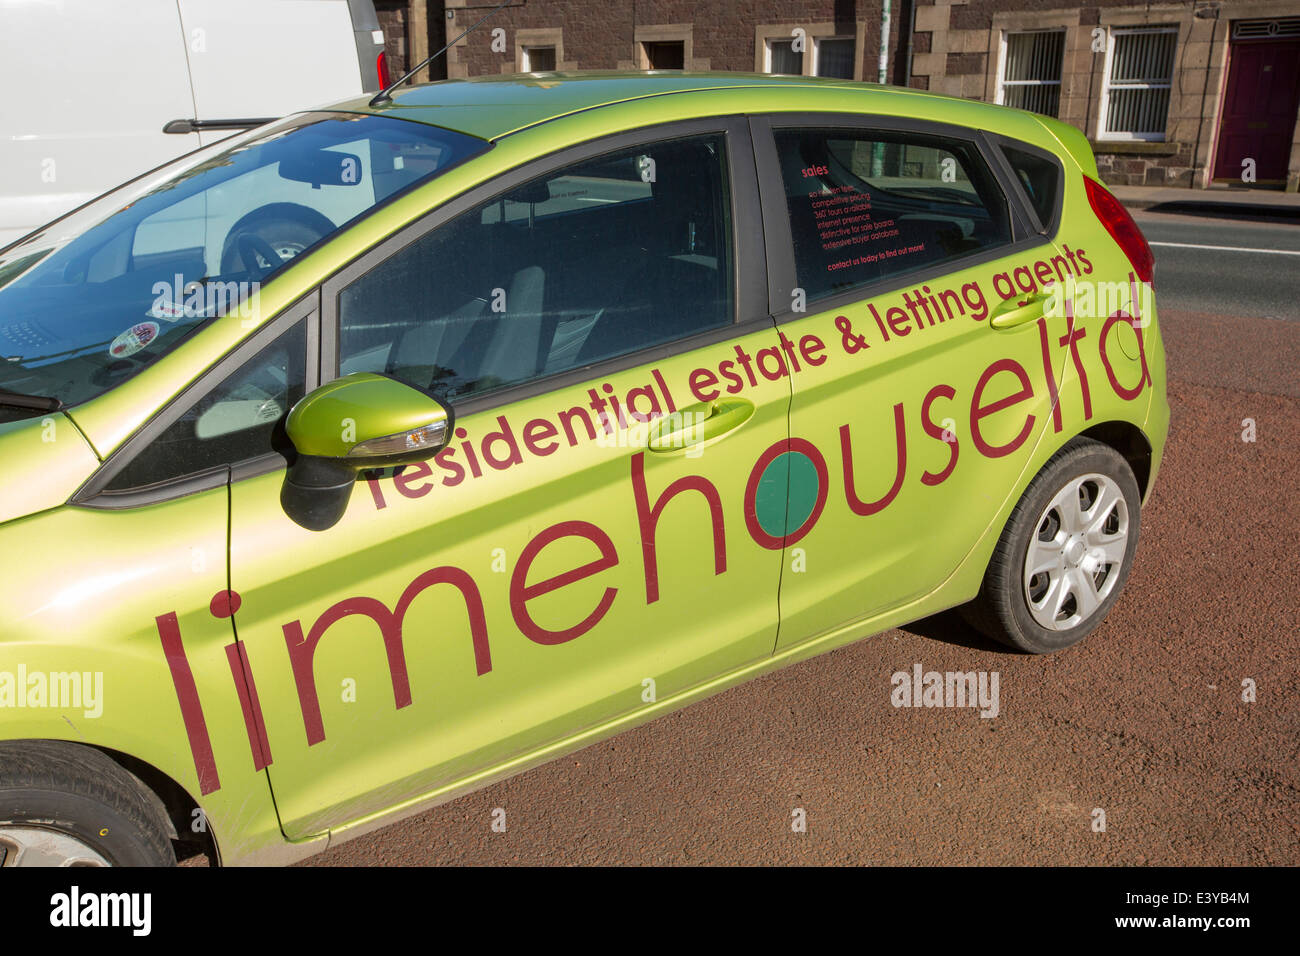 A car belonging to a letting agency in Biggar, Scotland, UK. - Stock Image